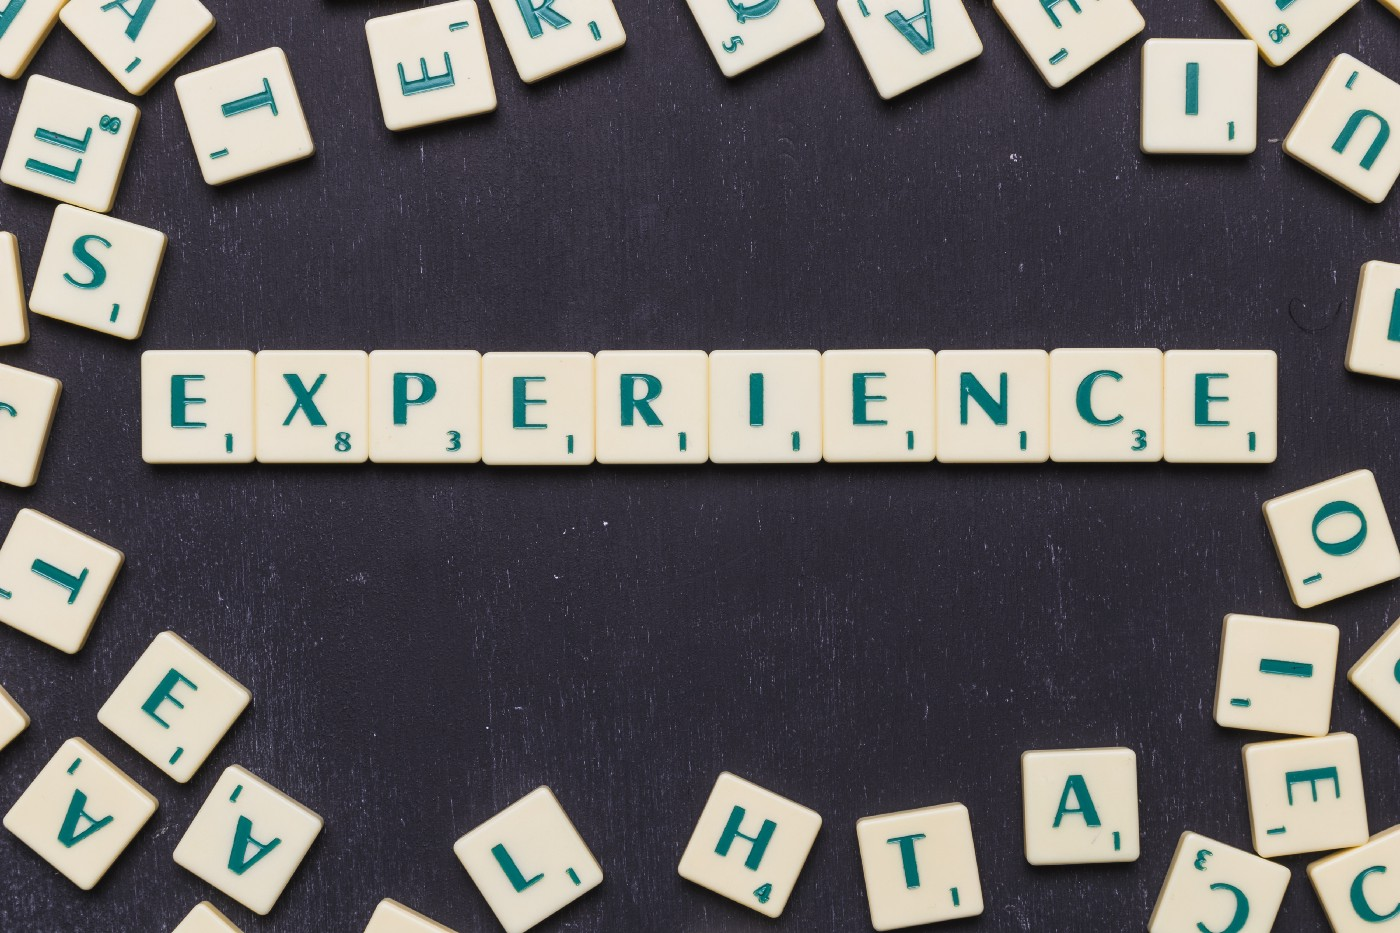 """A photo showing the word """"Experience"""" spelled out with Scrabble tiles."""